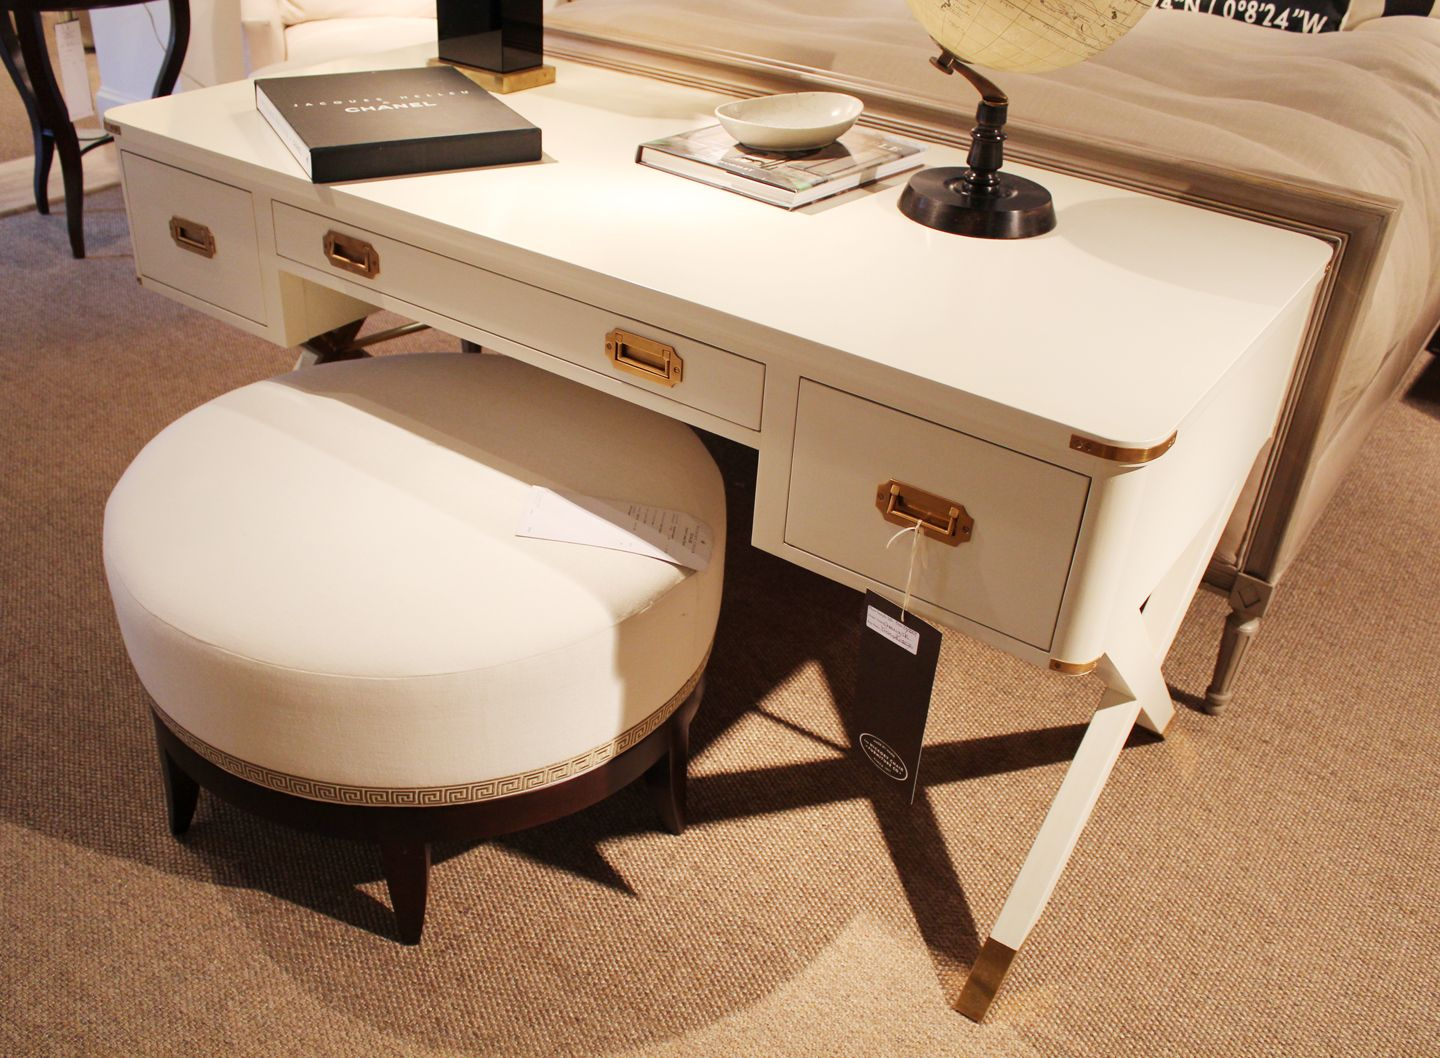 Hickory Chair By Suzanne Kasler Asheworth Campaign Desk In Cream Lacquer